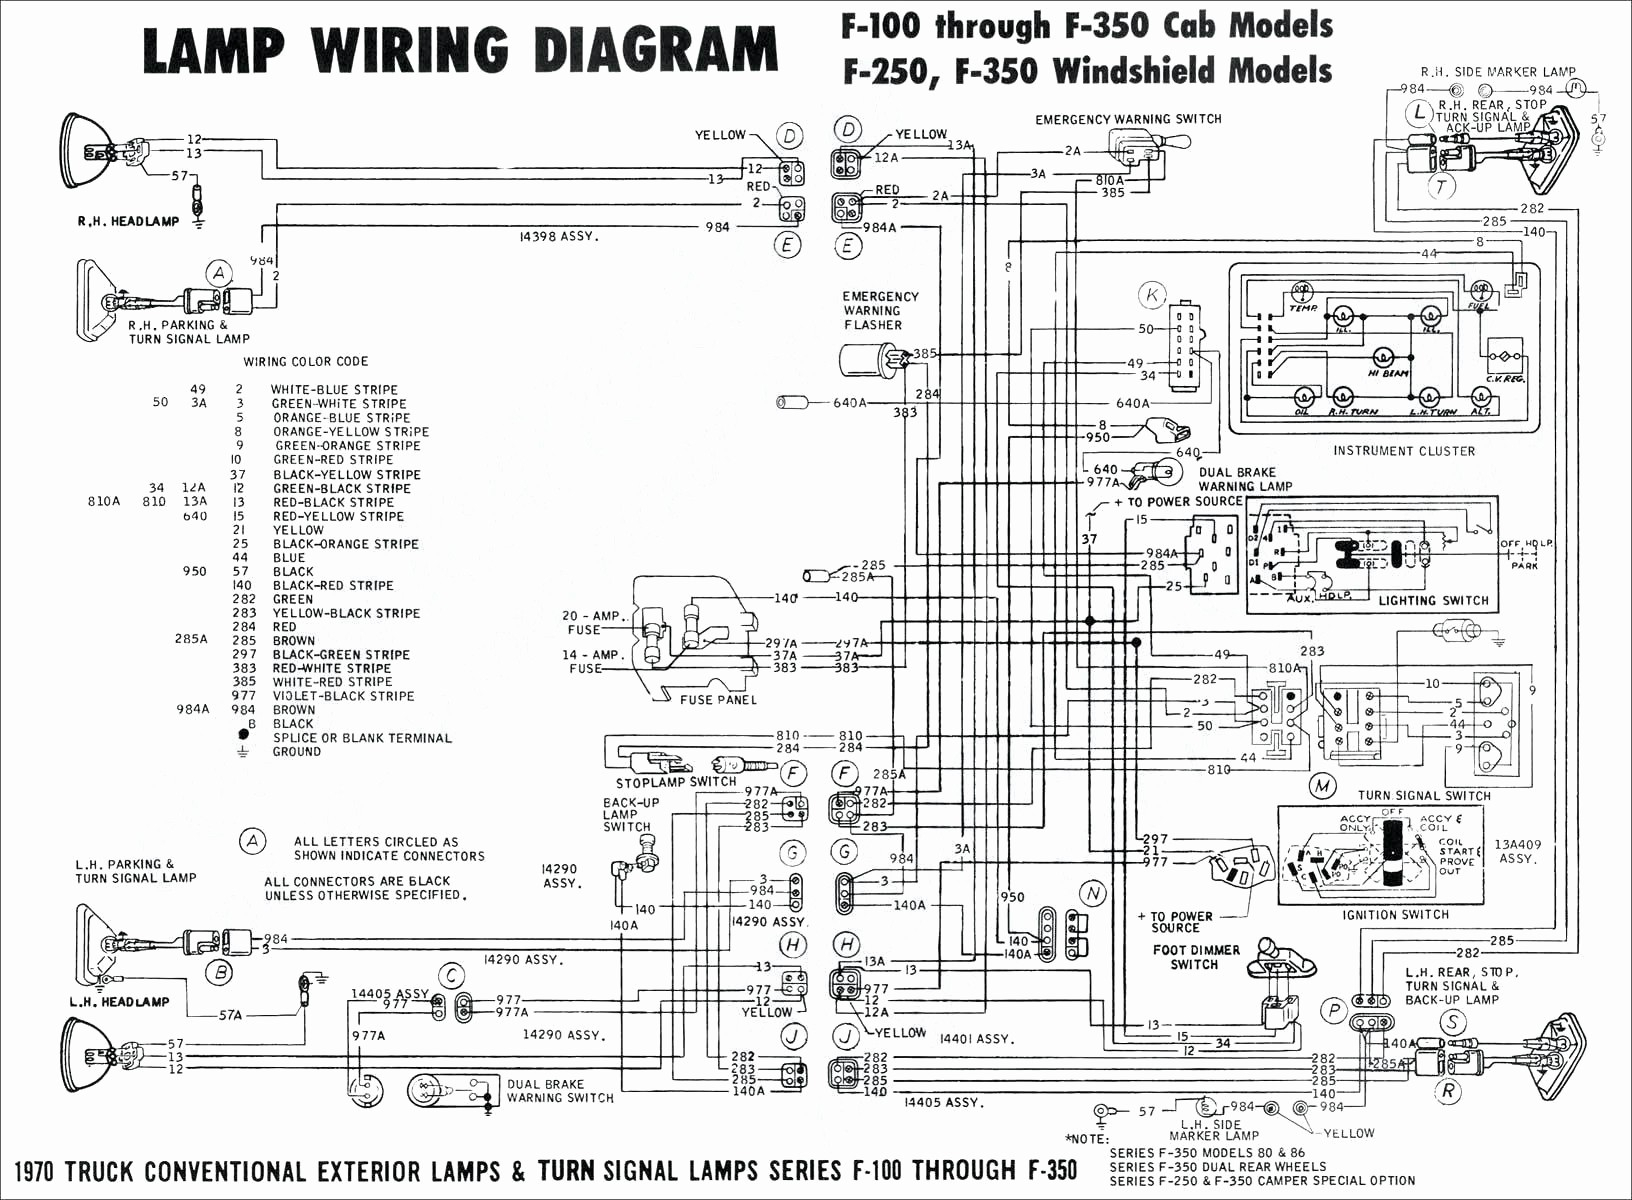 DA4549 2006 Ford Focus Headlight Wiring Diagram | Wiring ResourcesWiring Resources